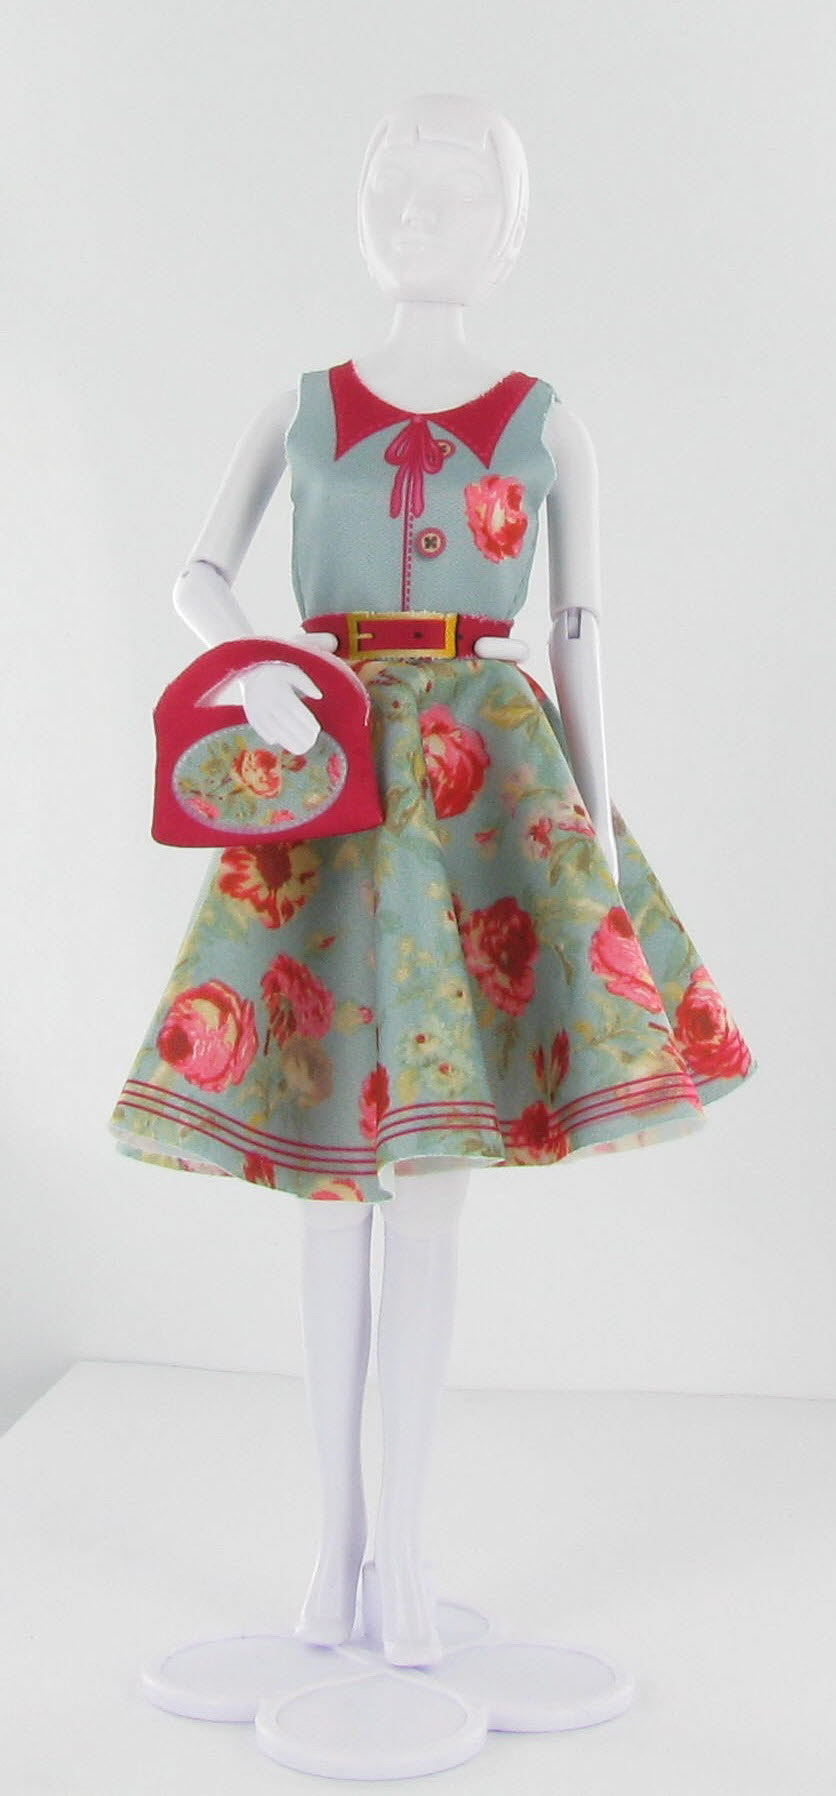 Dress Your Doll - Peggy Peony